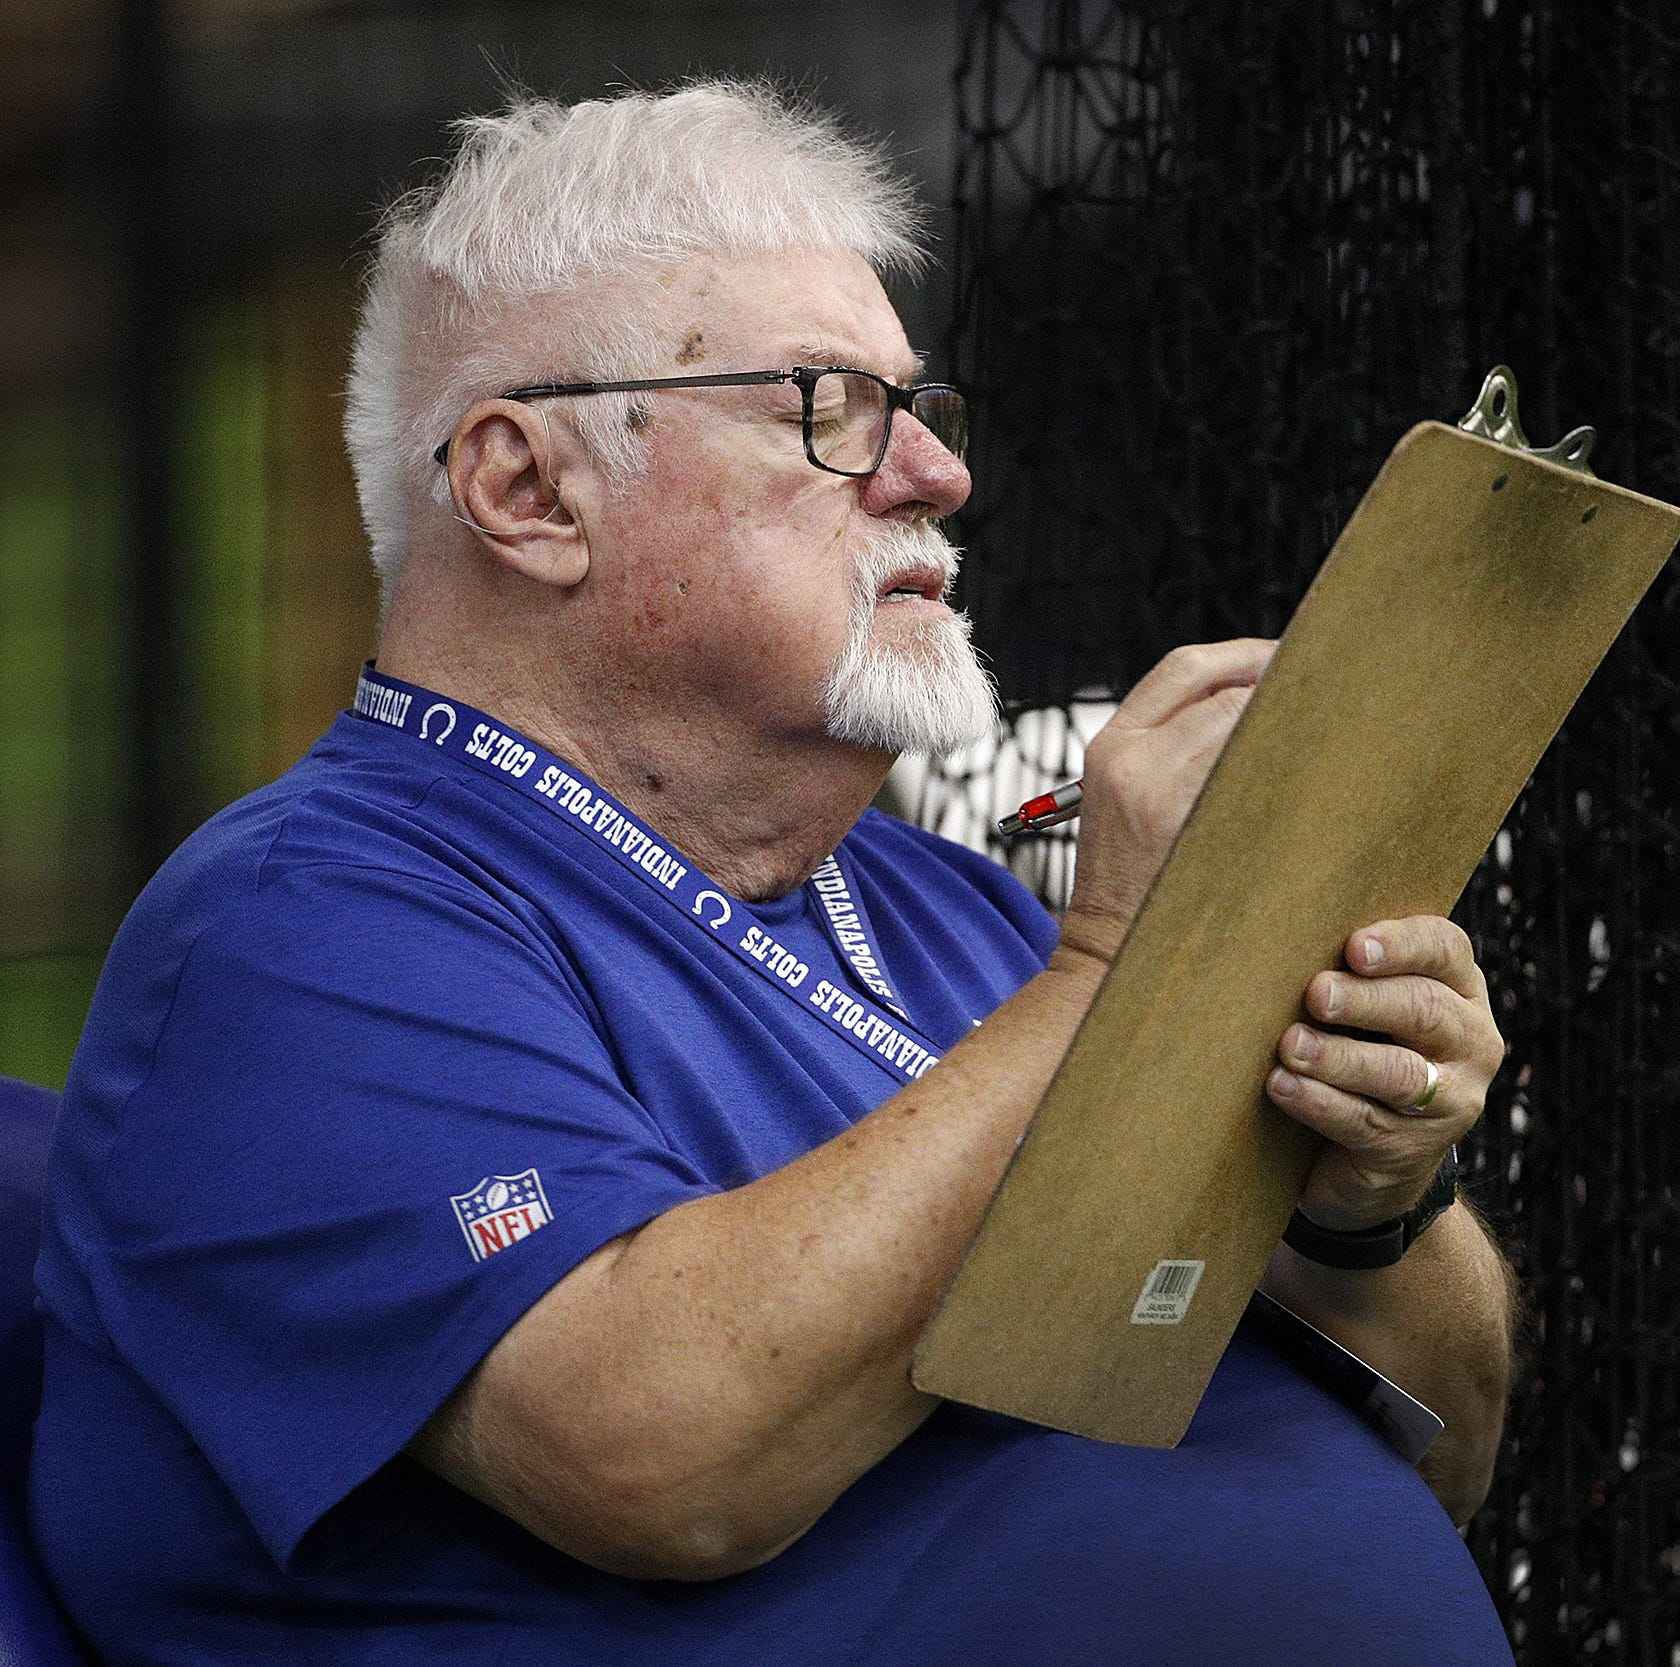 Enjoy famous calls by Colts radio man Bob Lamey